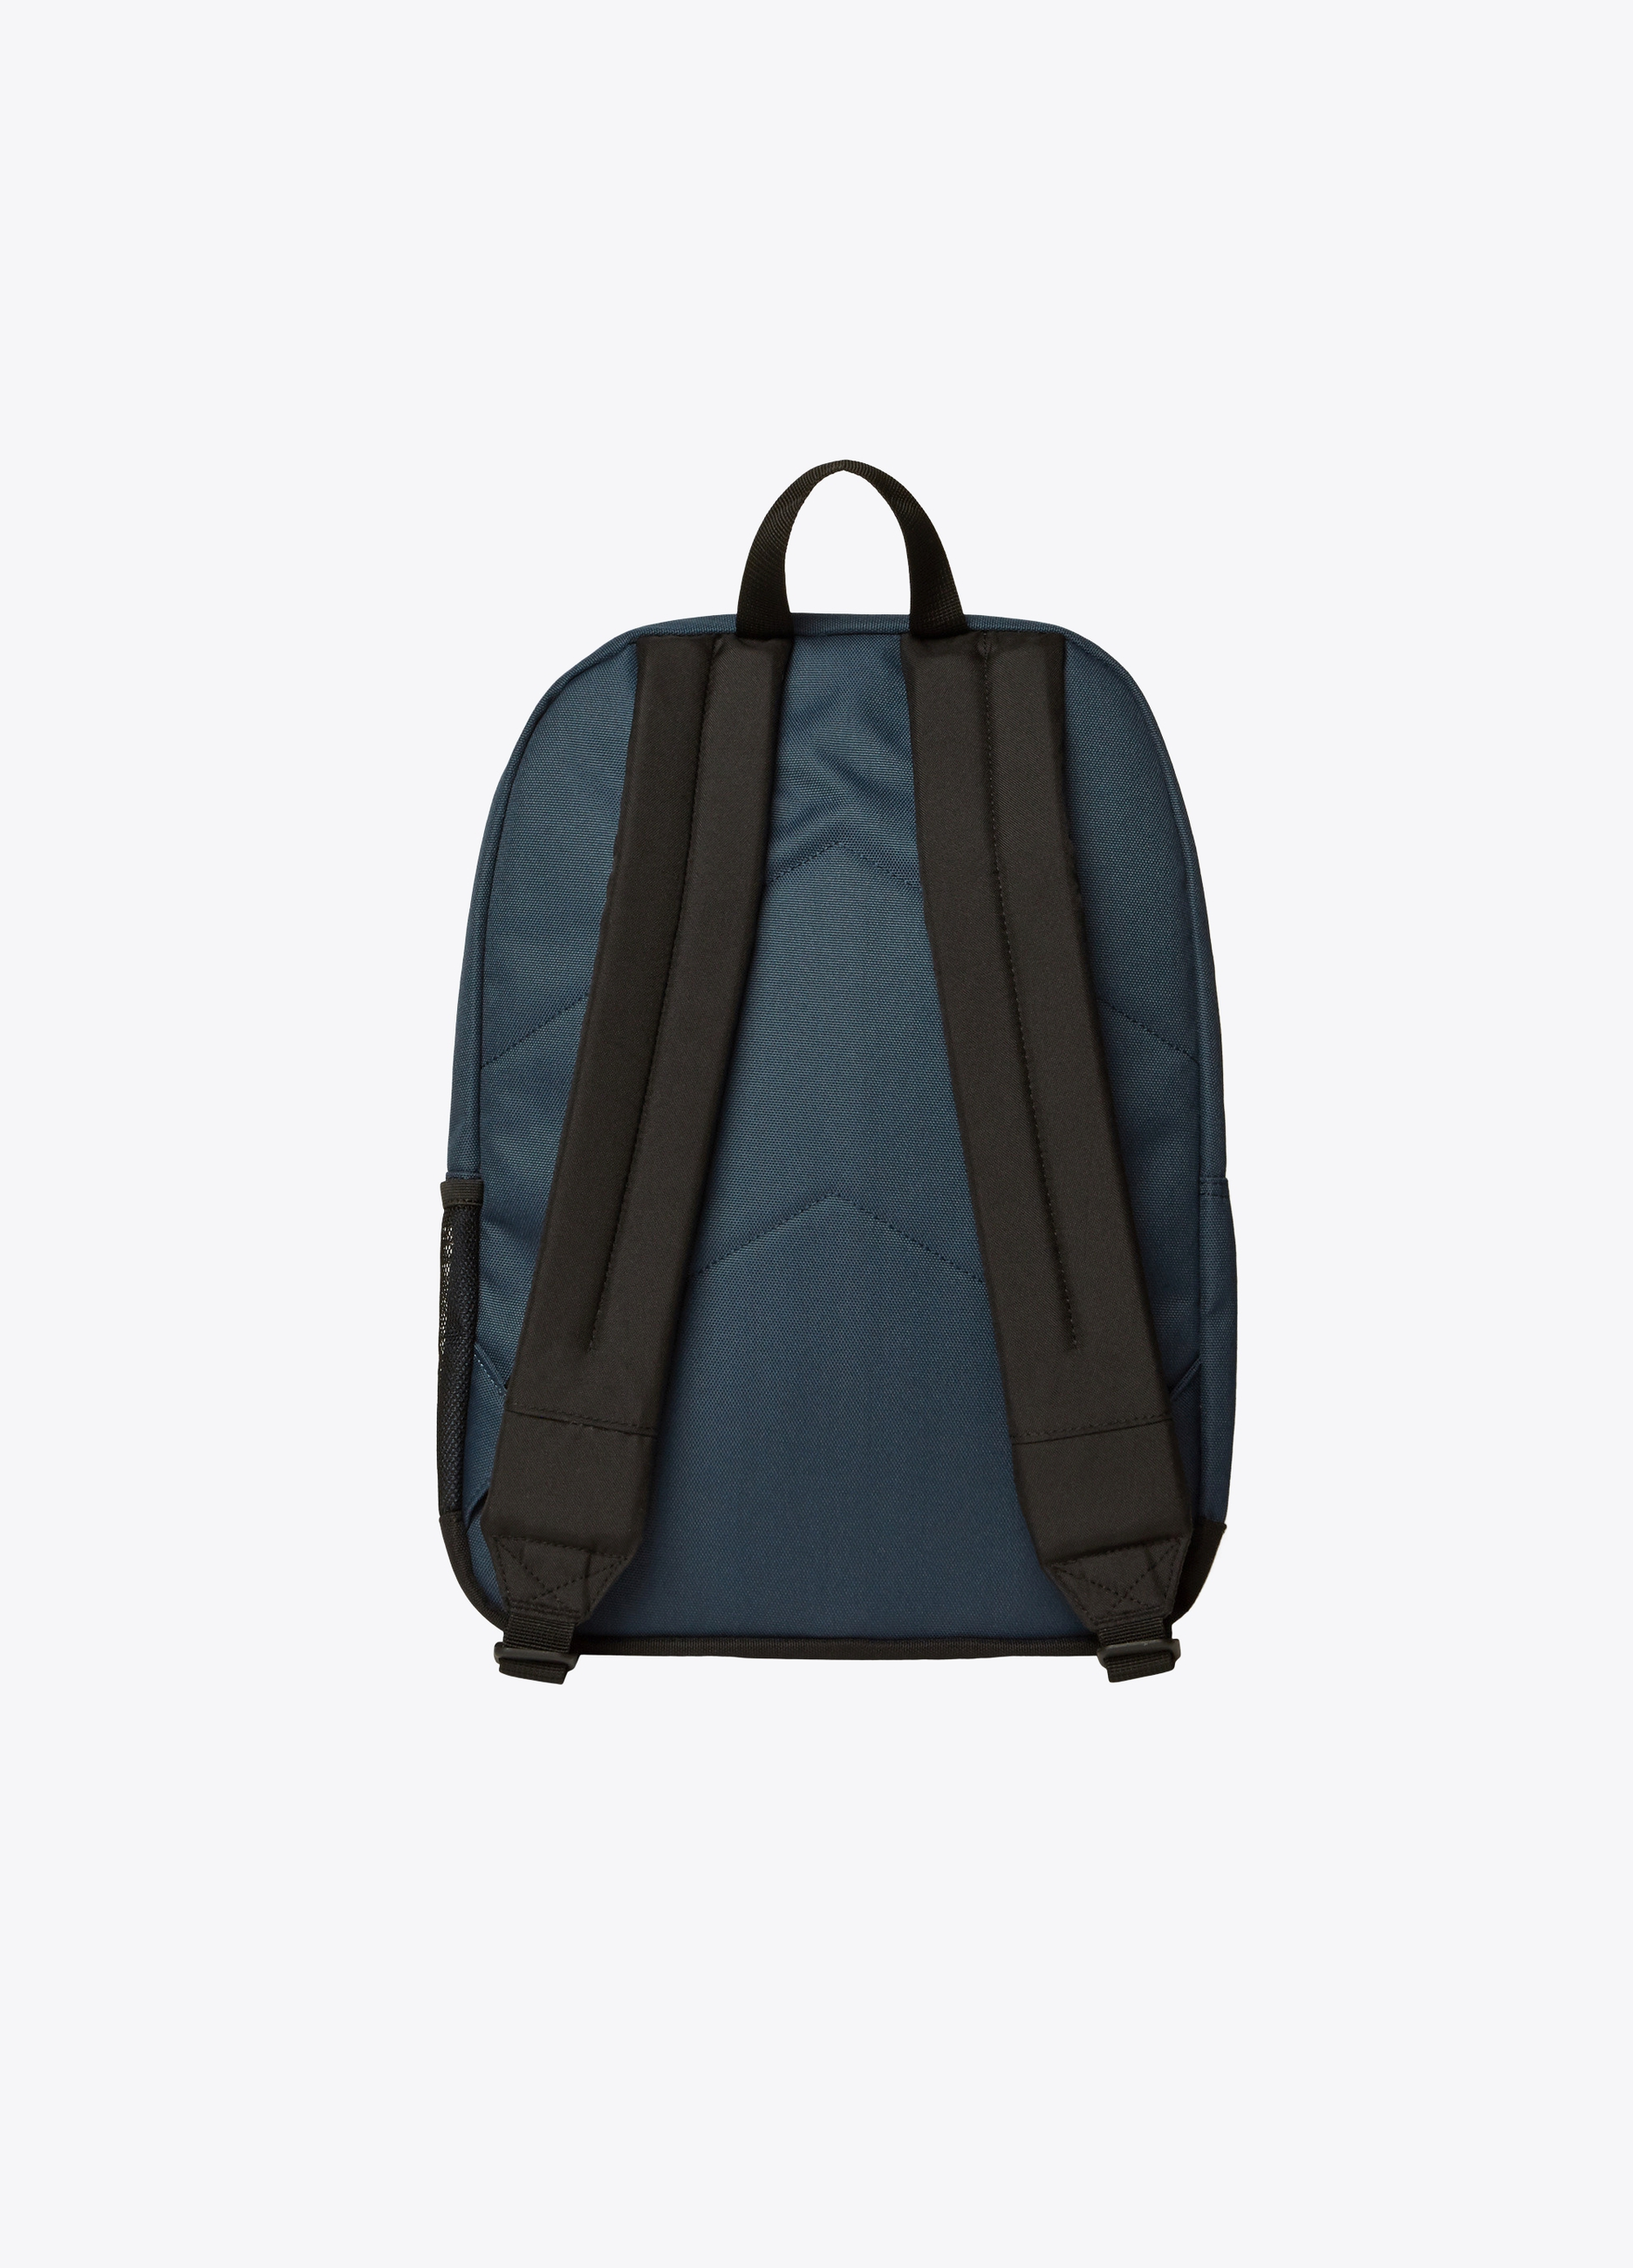 Solid colour backpack with pockets